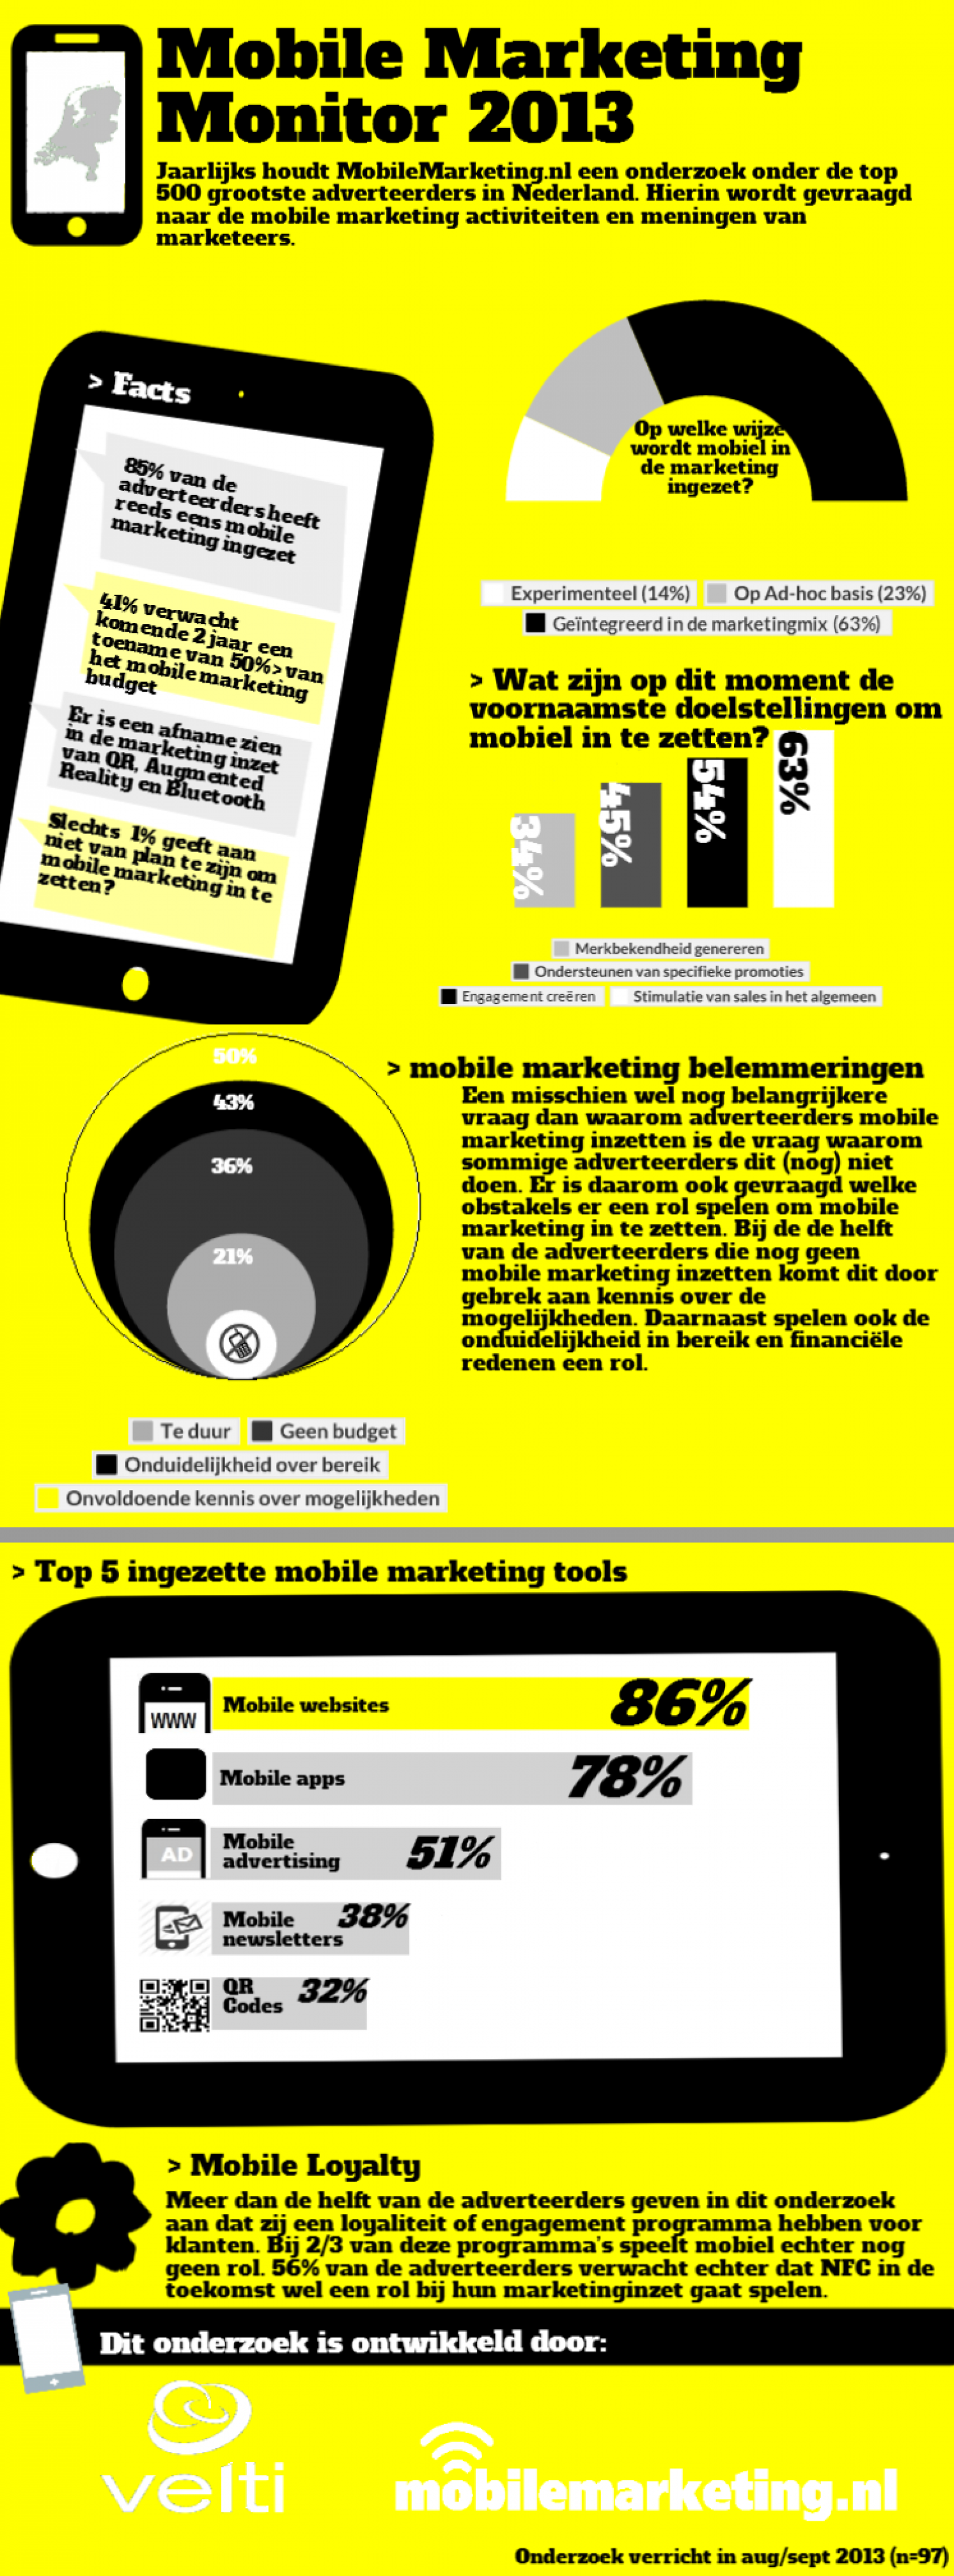 Mobile Marketing Monitor 2013 Infographic